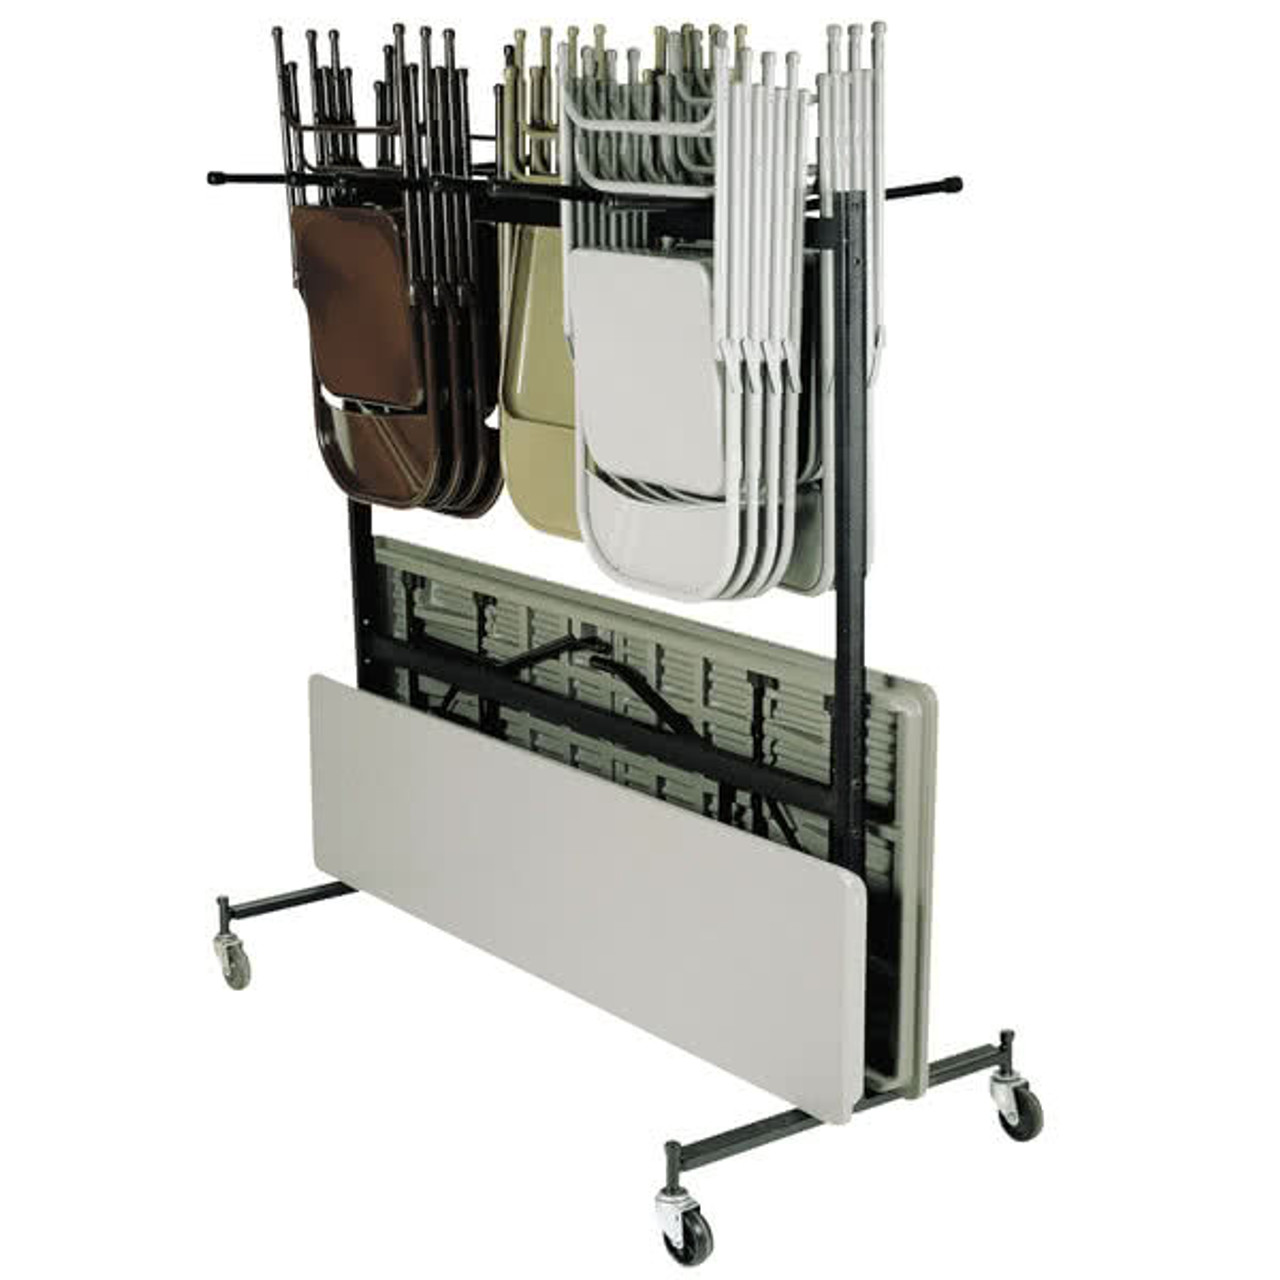 - Hanging Folding Chair And Table Storage And Transport Cart - Holds